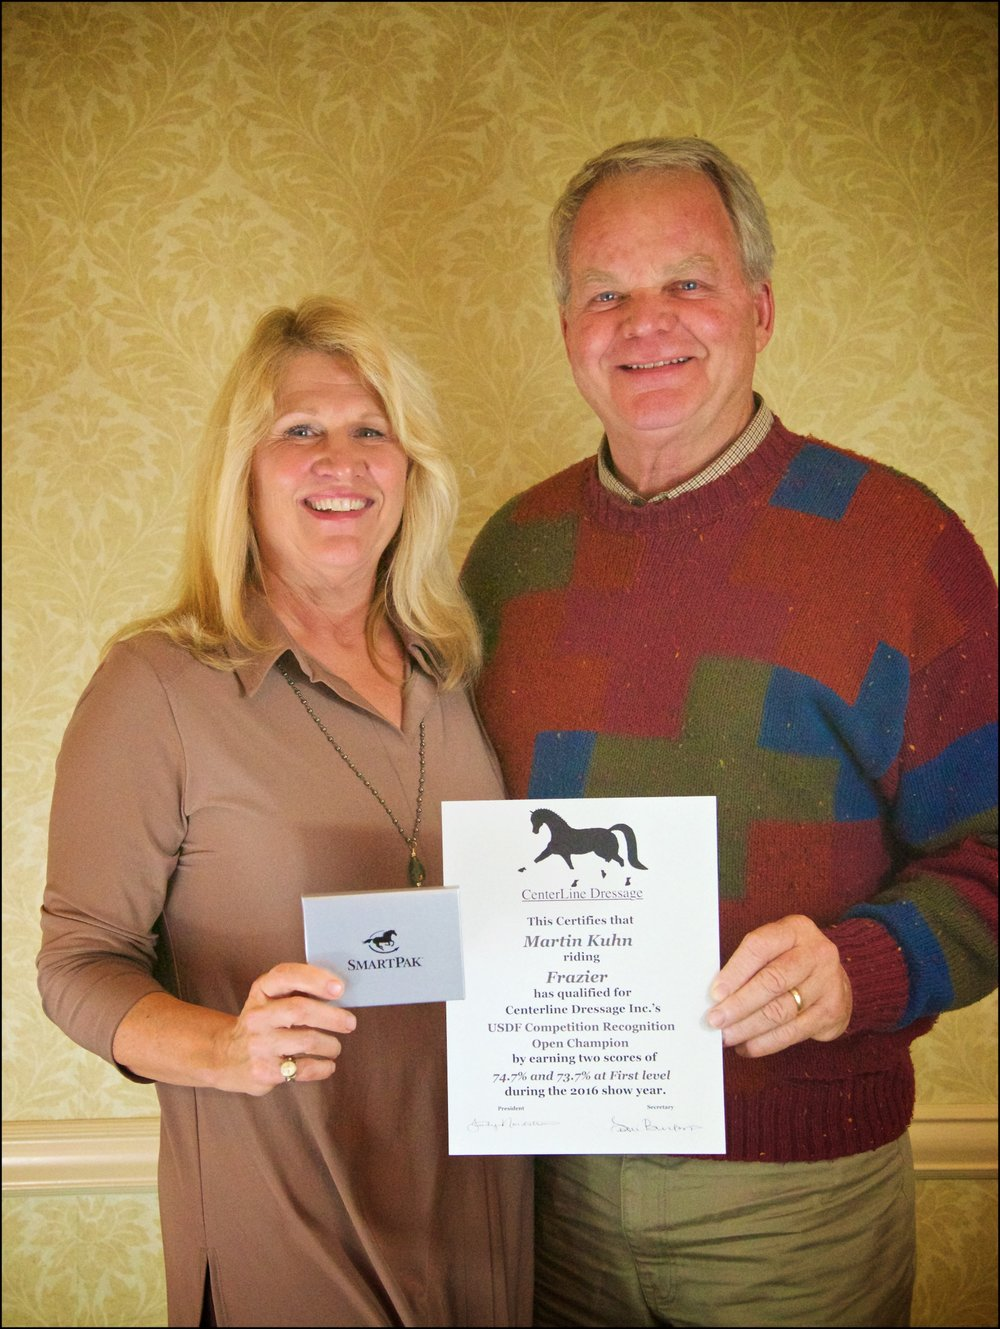 Training Level Open Champion Owners Joe & Jodi Lemkemann